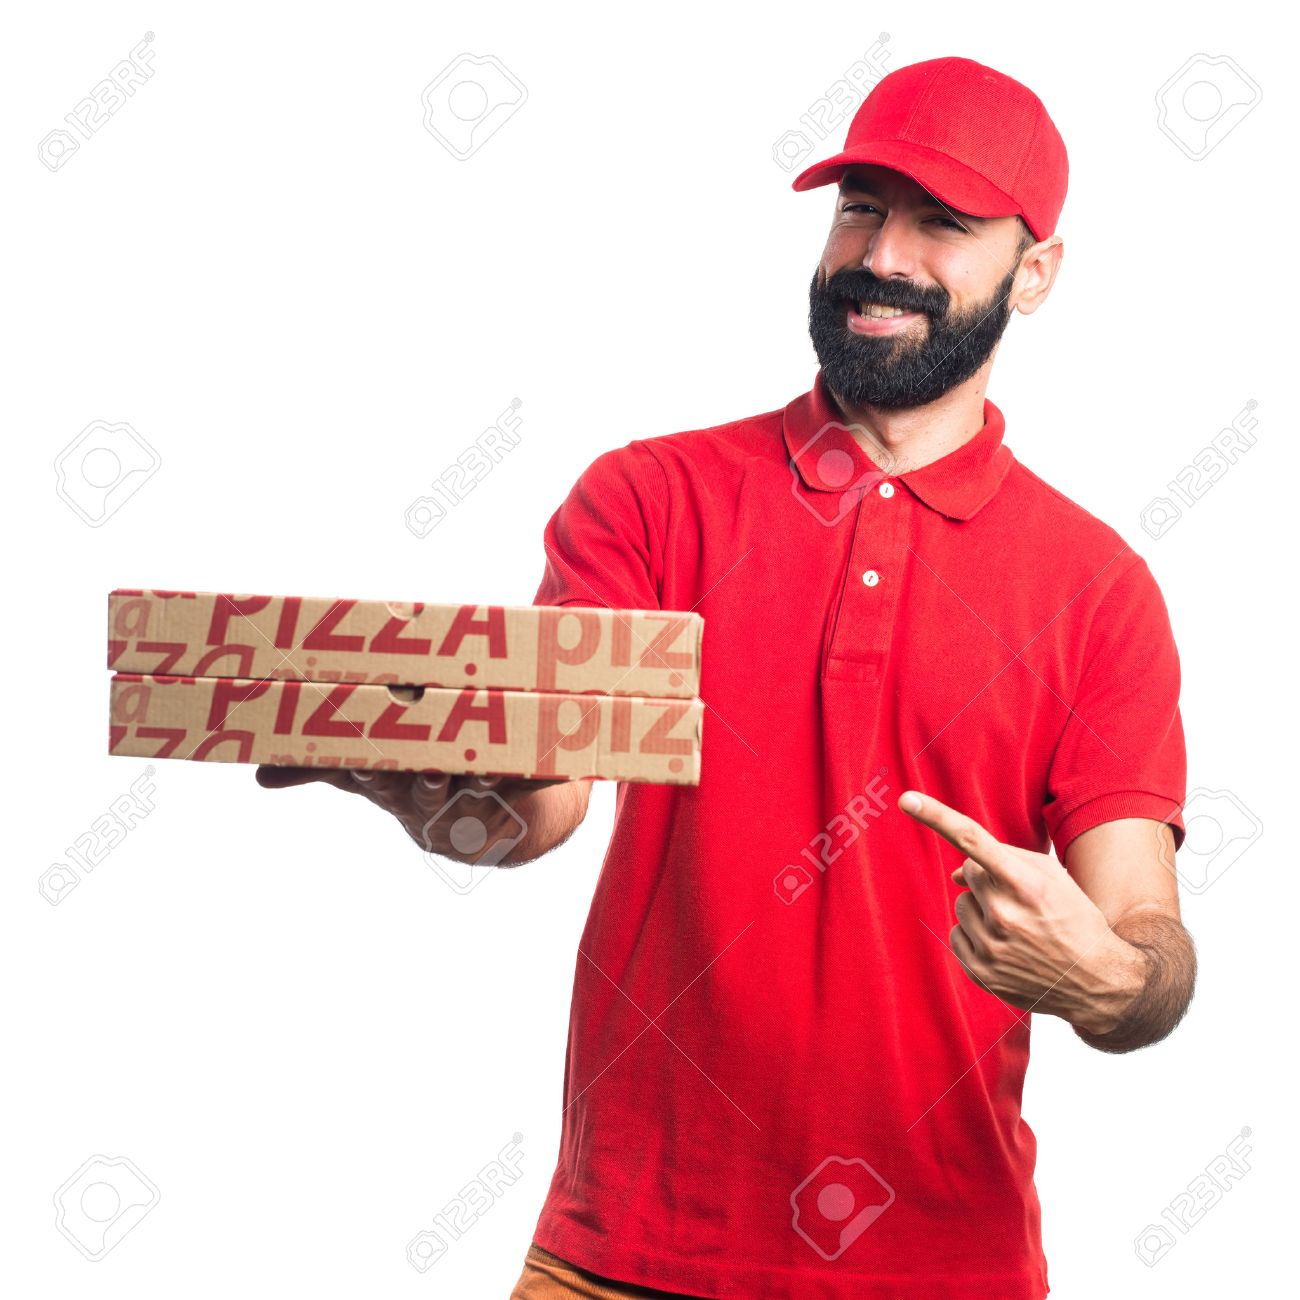 Pizza delivery man Stock Photo - 48446285